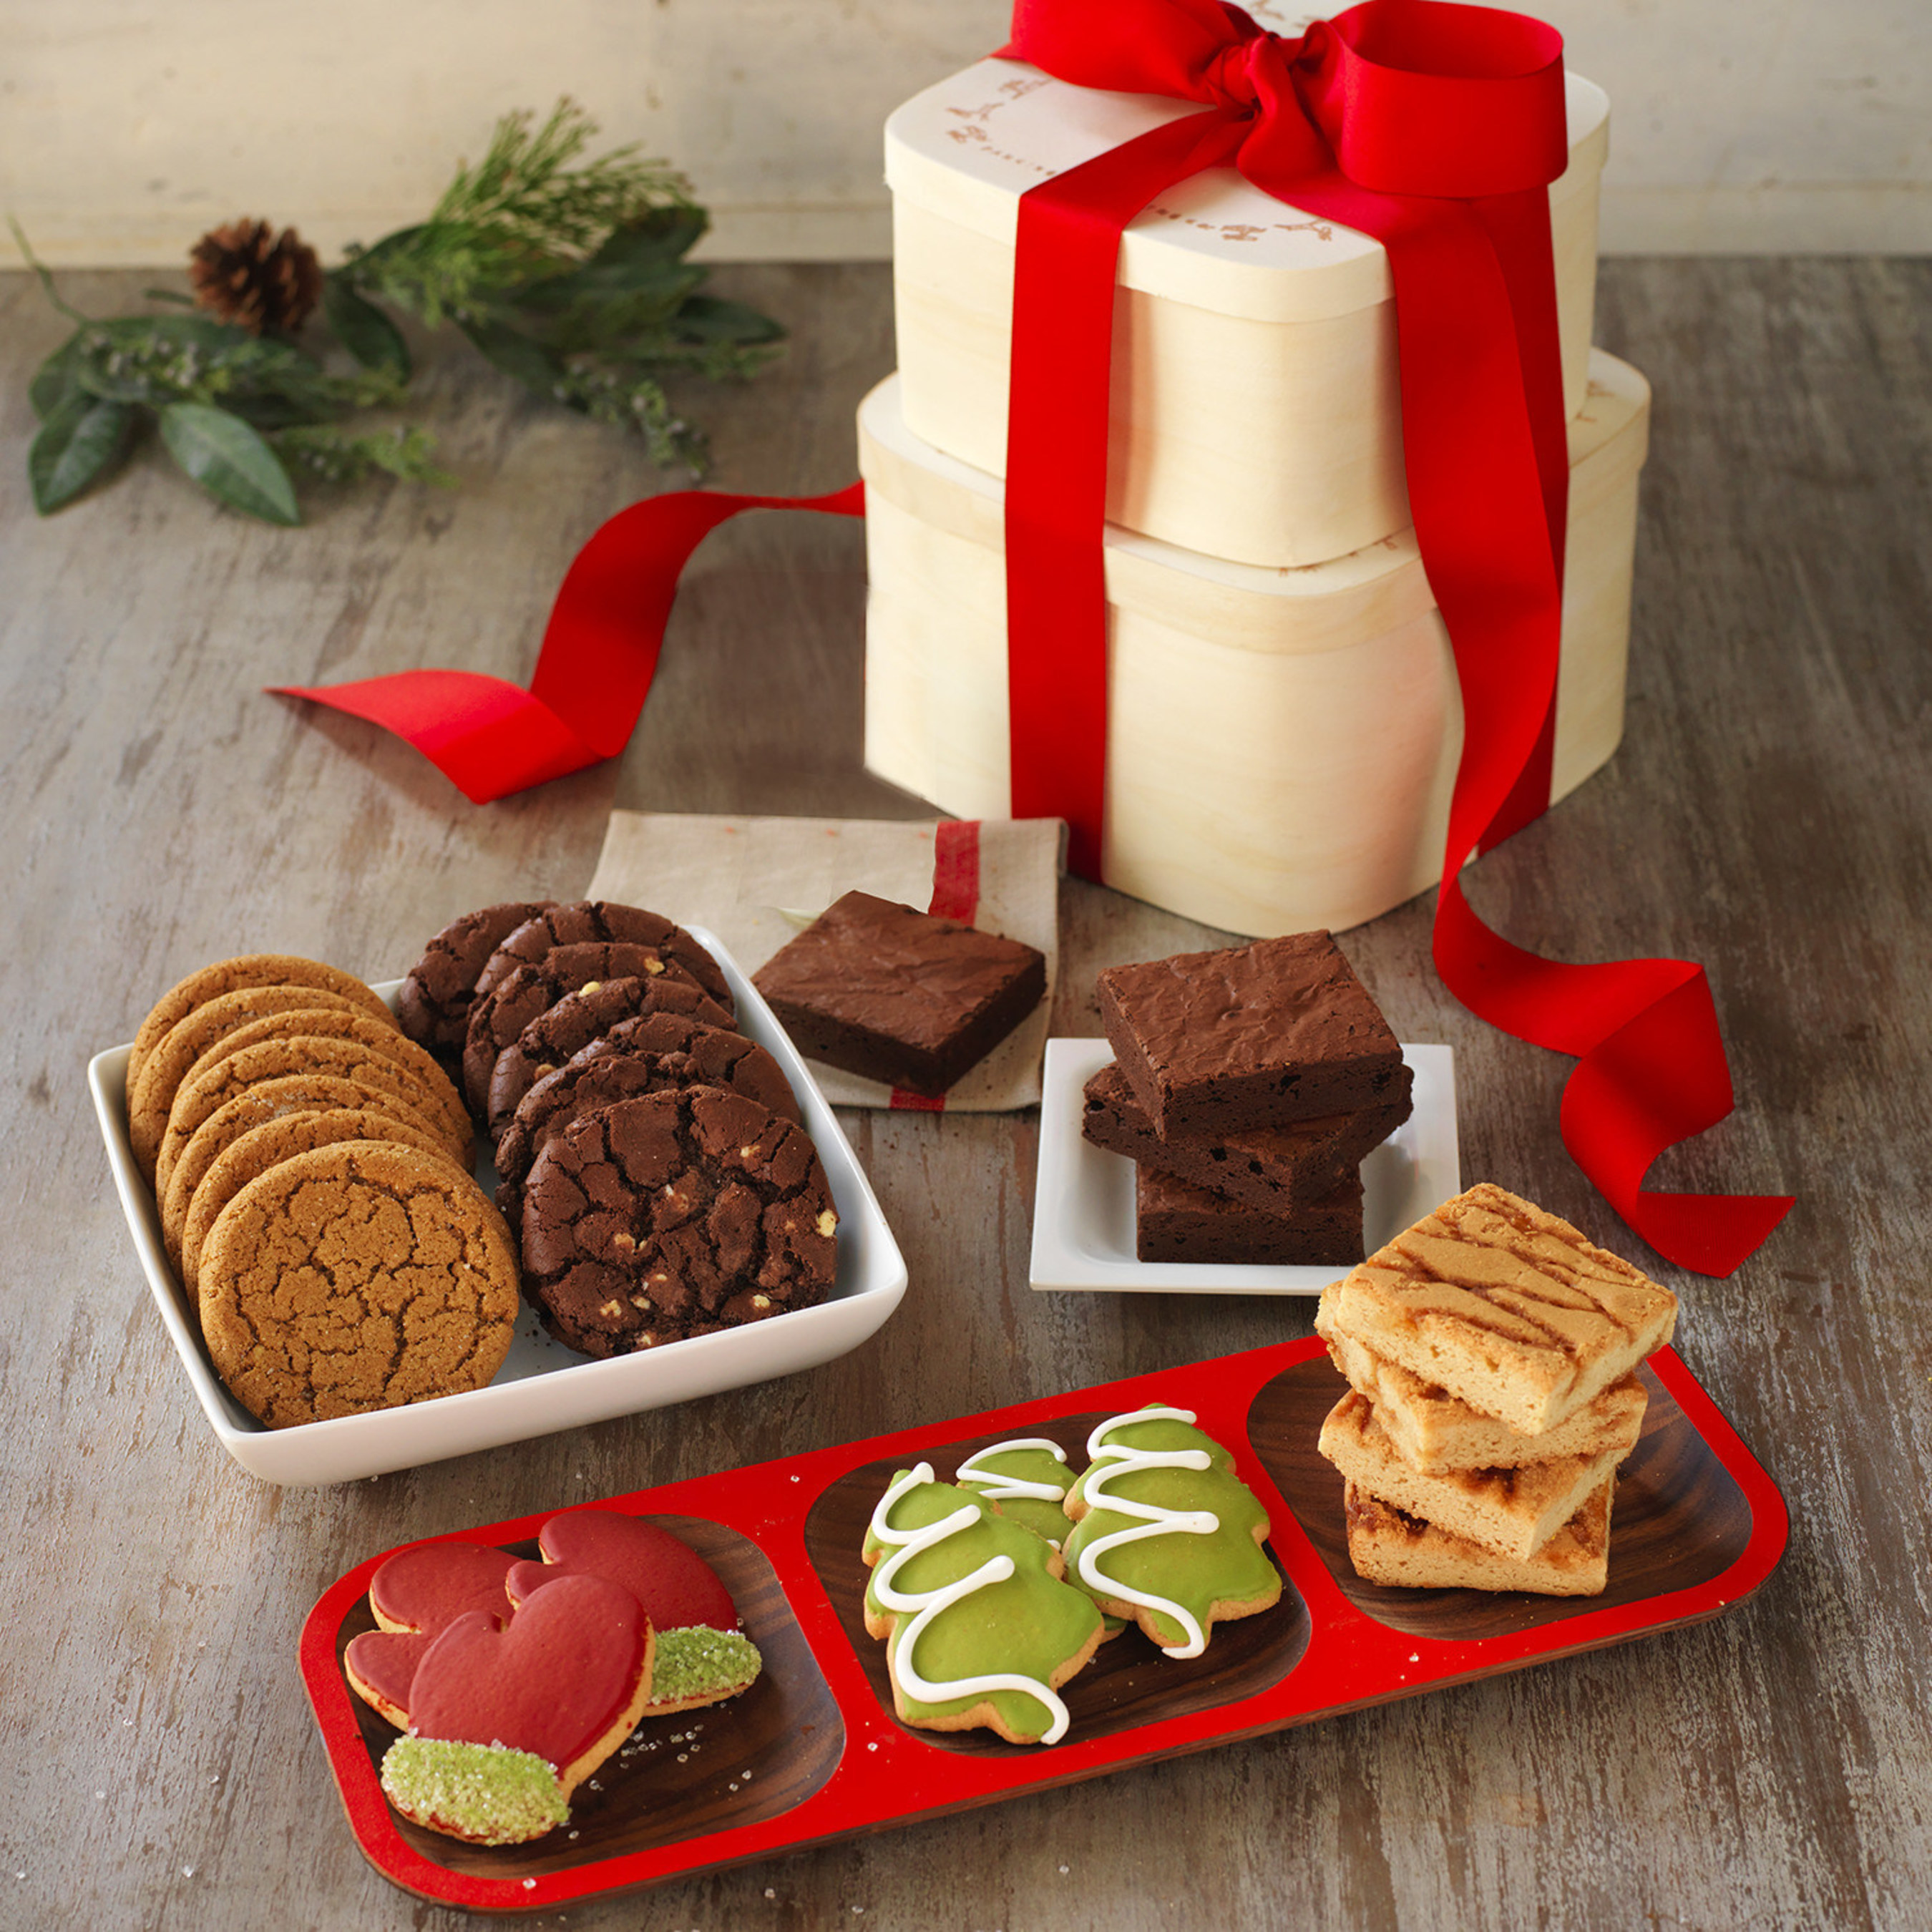 Dancing Deer Baking Company Helps Make Holiday Shopping Easy With Gourmet Food Gifts